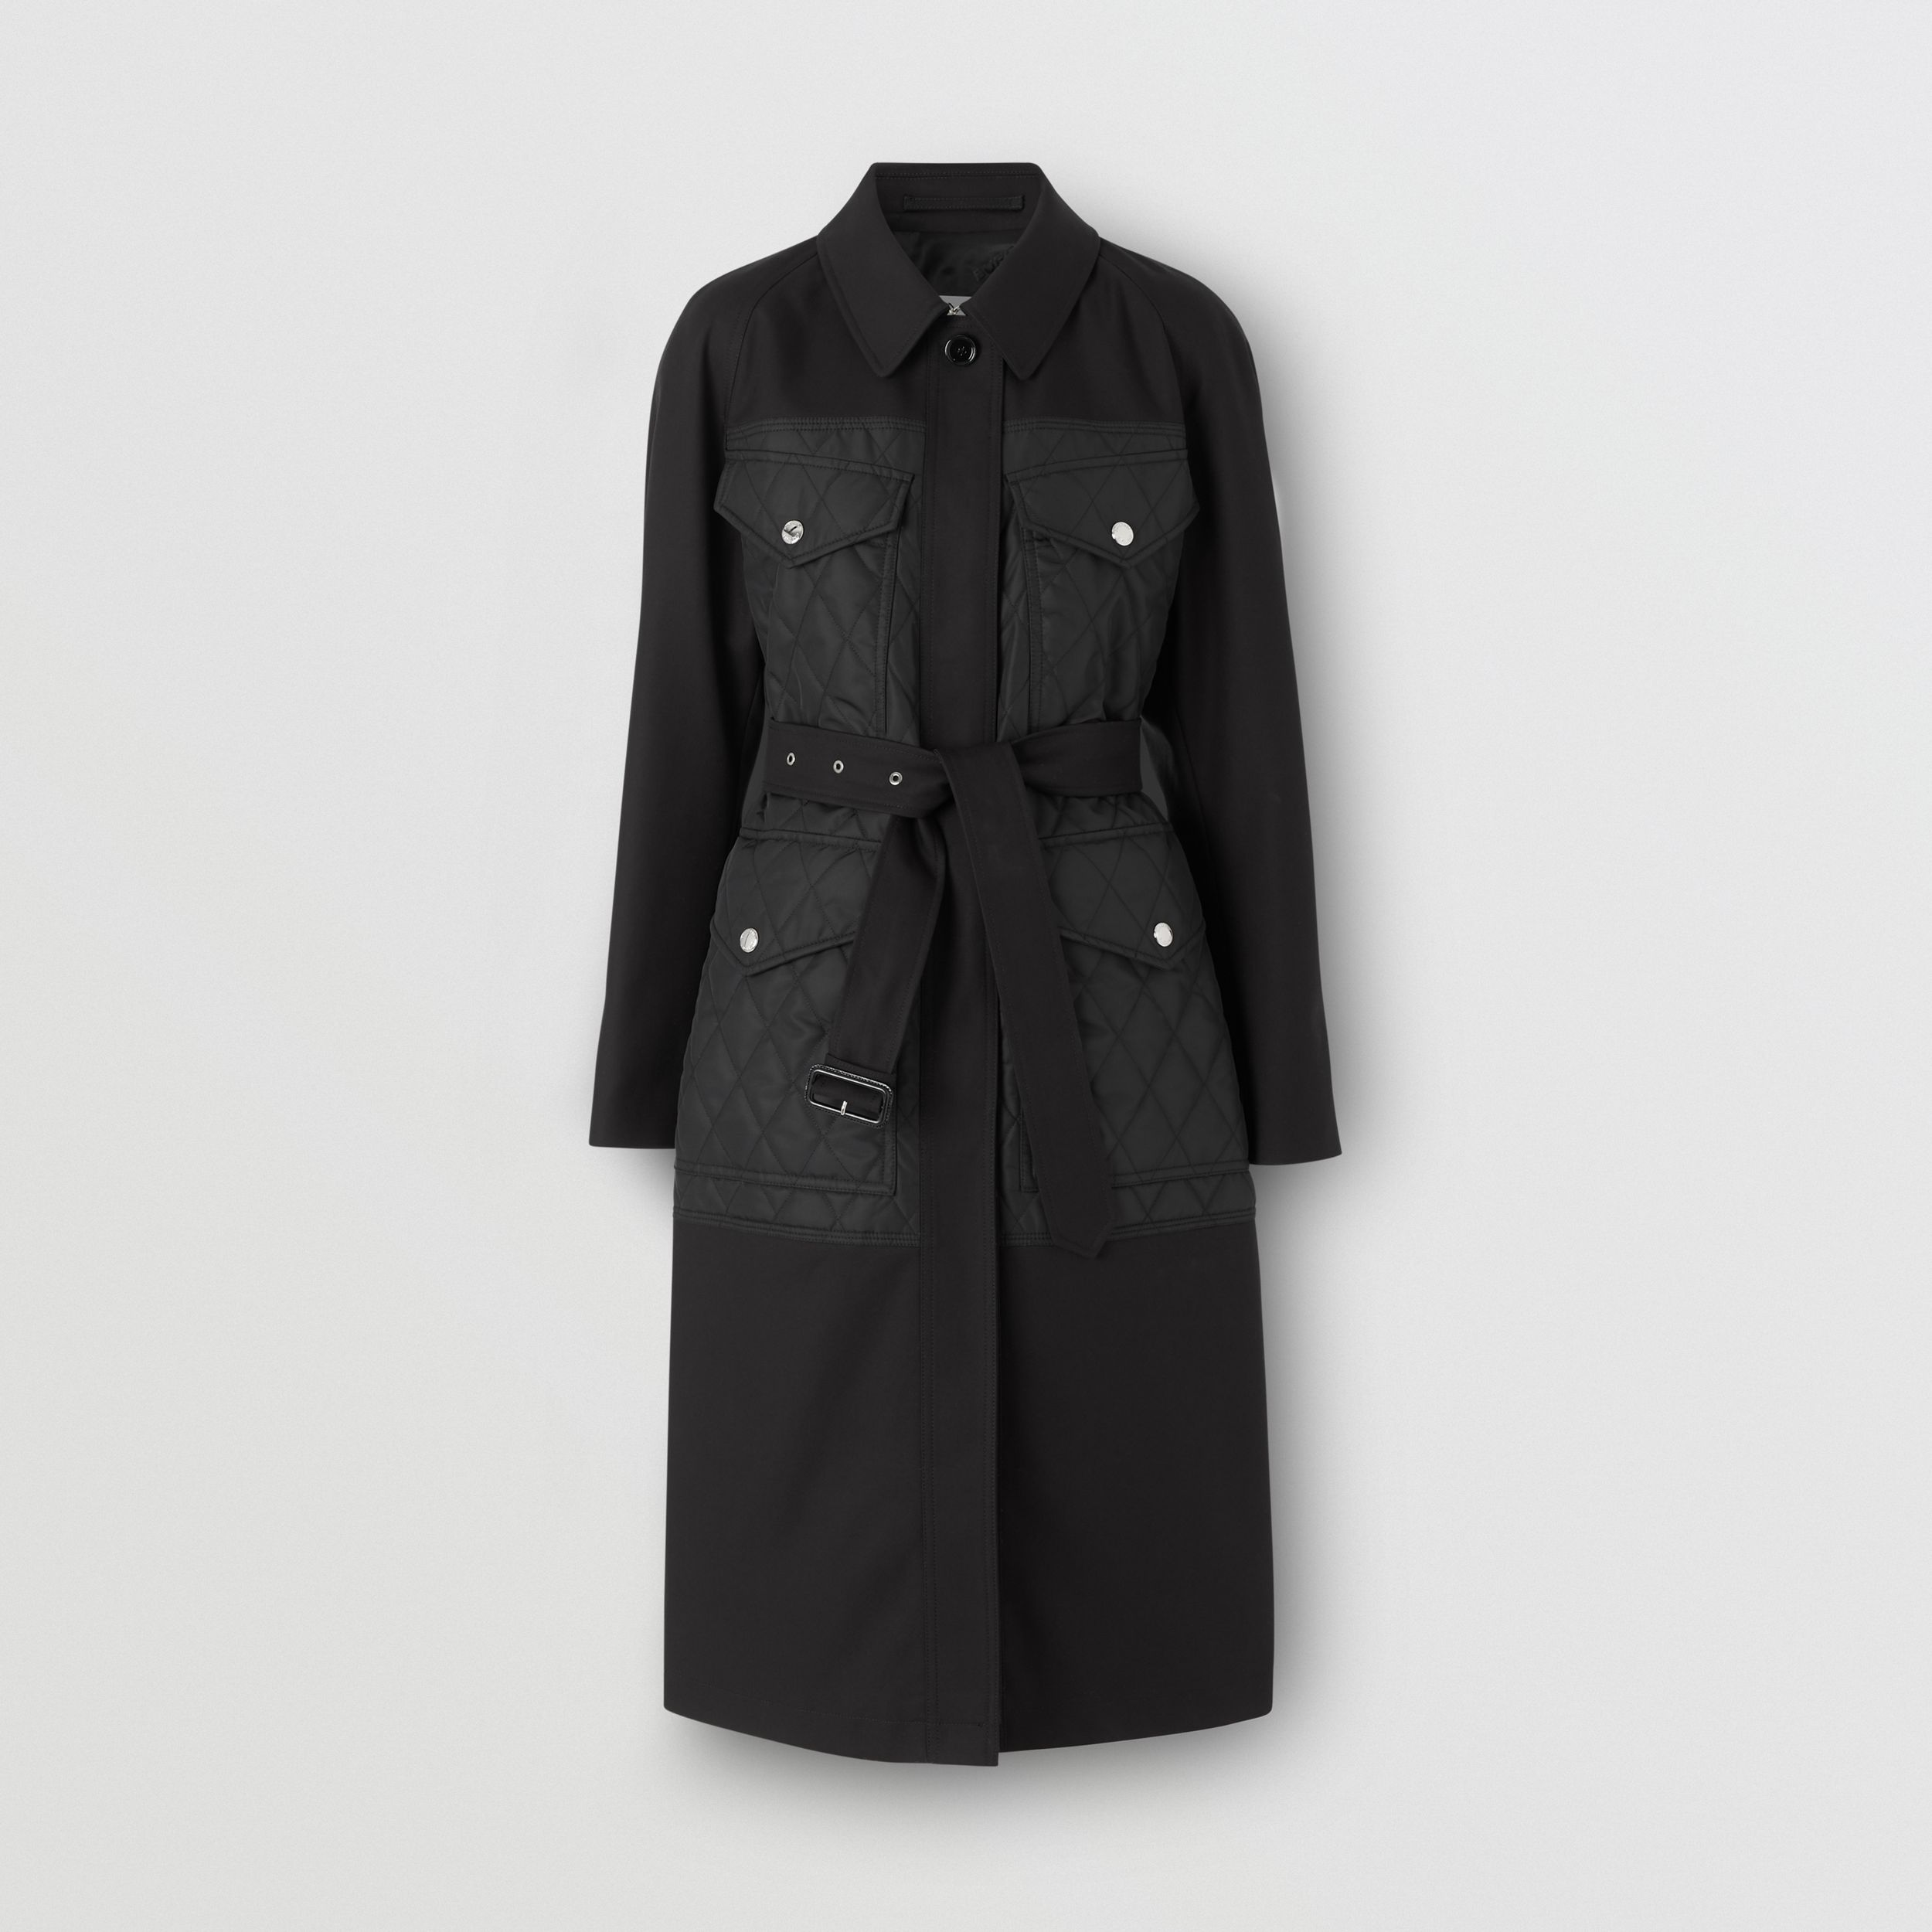 Diamond Quilted Panel Cotton Gabardine Car Coat in Black - Women | Burberry - 4